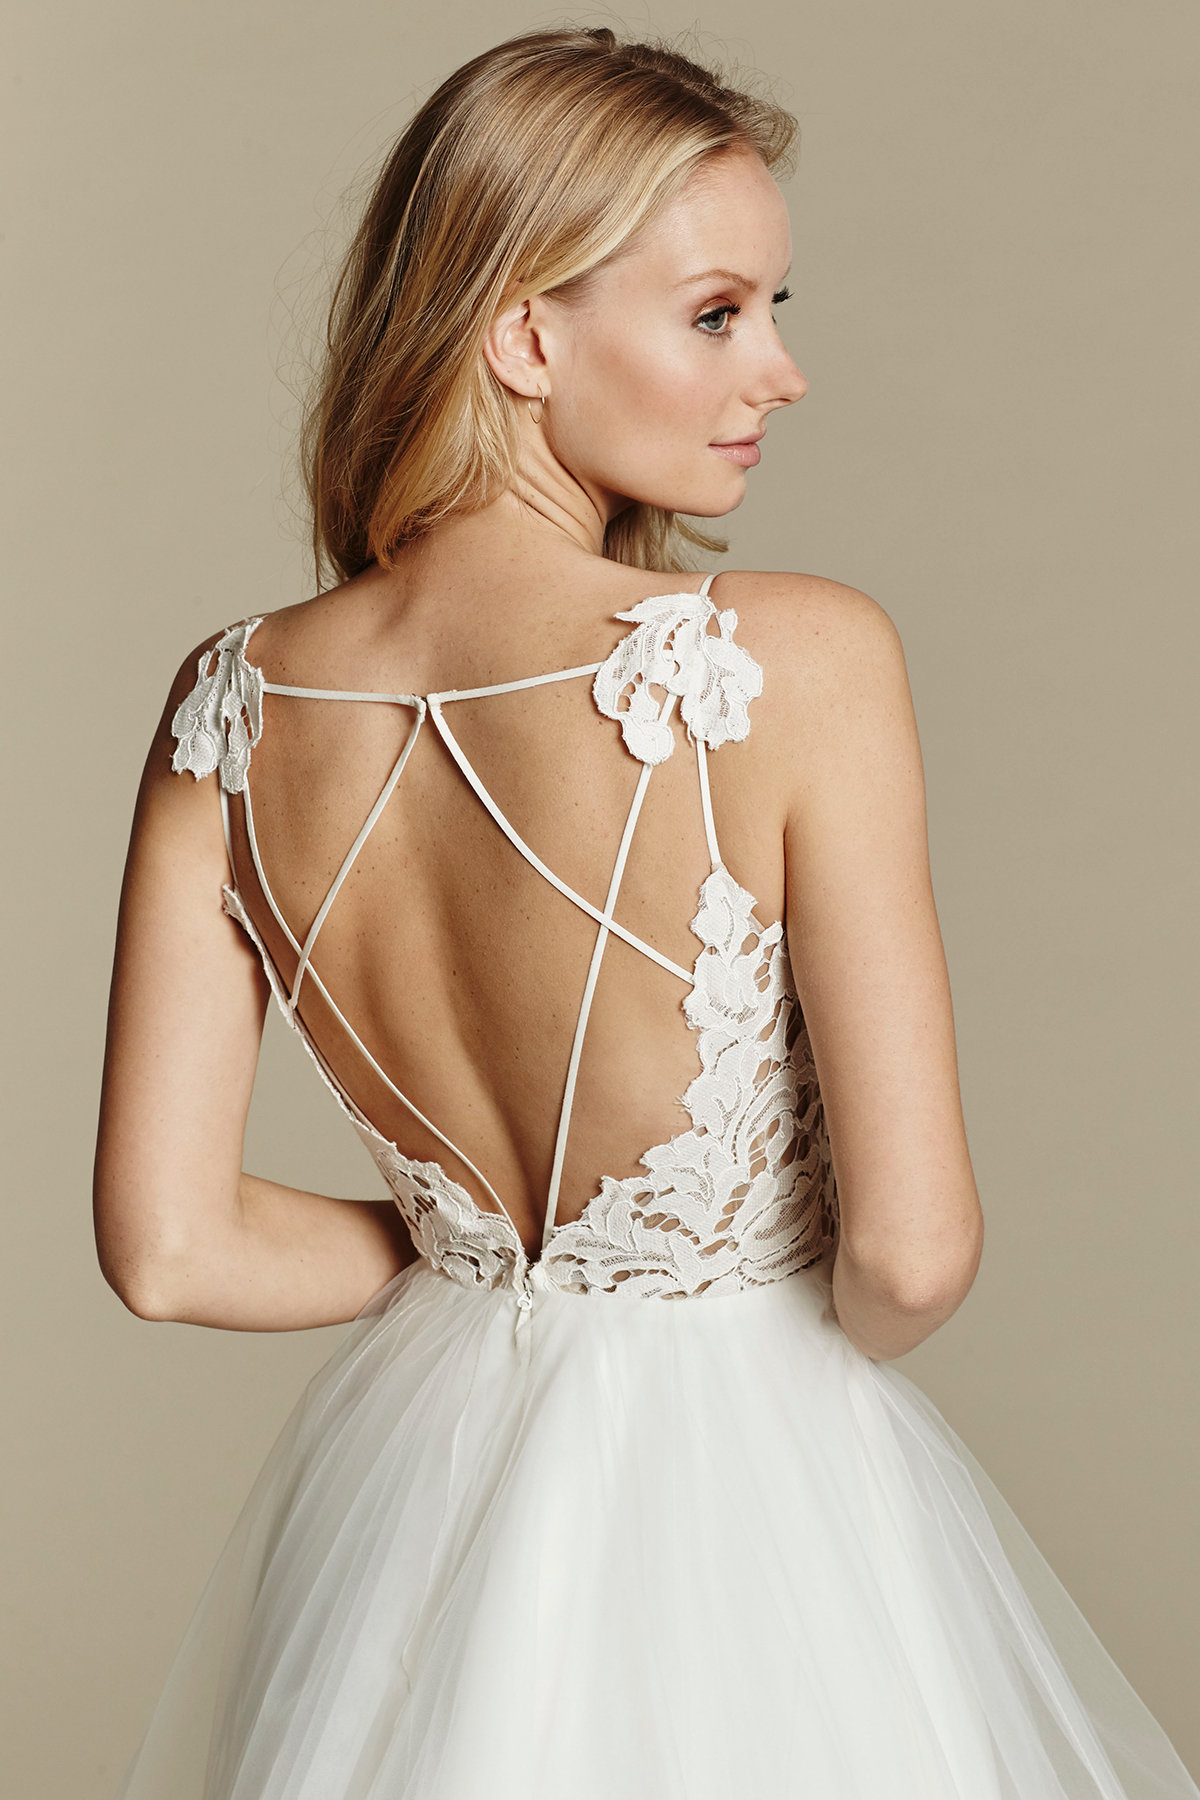 blush-hayley-paige-bridal-lace-tulle-ball-gown-scalloped-v-neck-strap-tiered-tulle-horsehair-trim-1600_x3.jpg